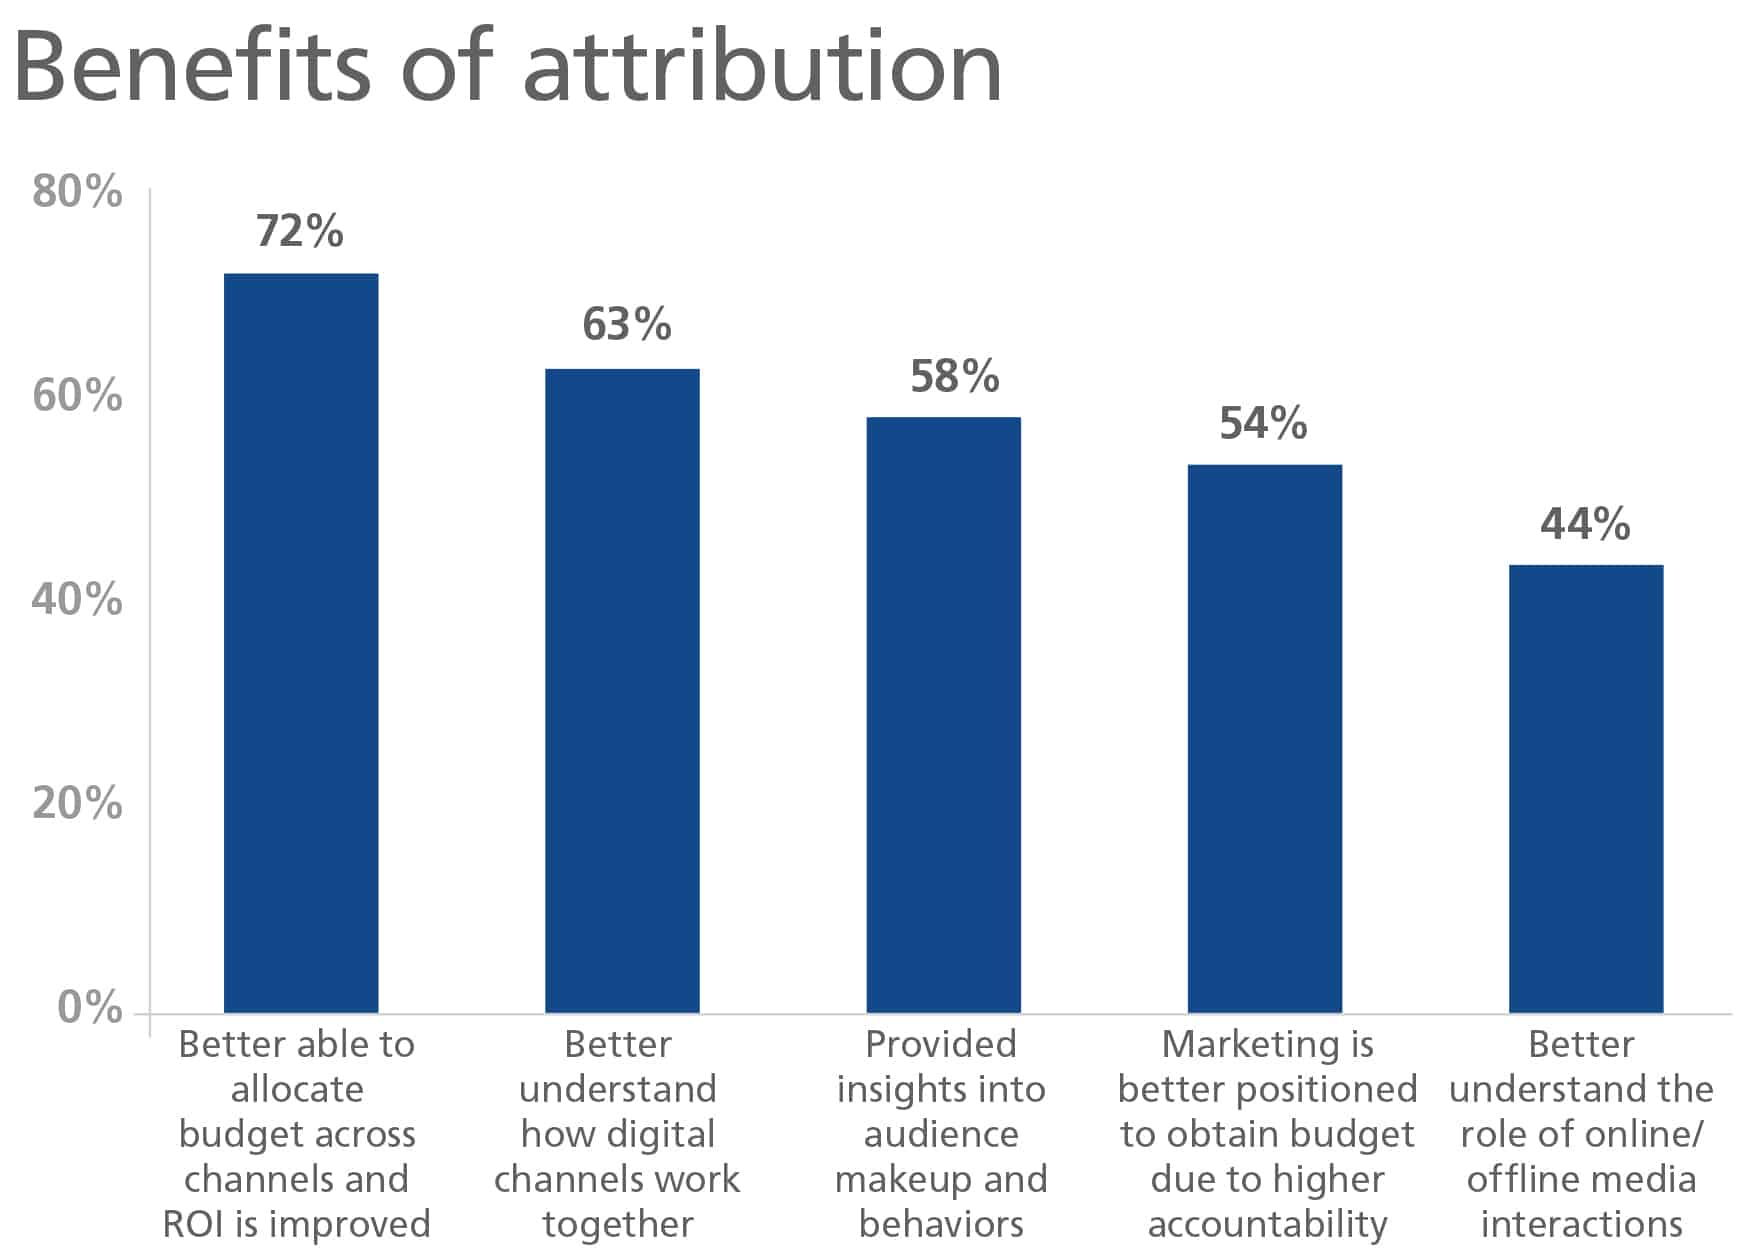 Bar graph showing the percentage of marketers who believe different benefits of attribution